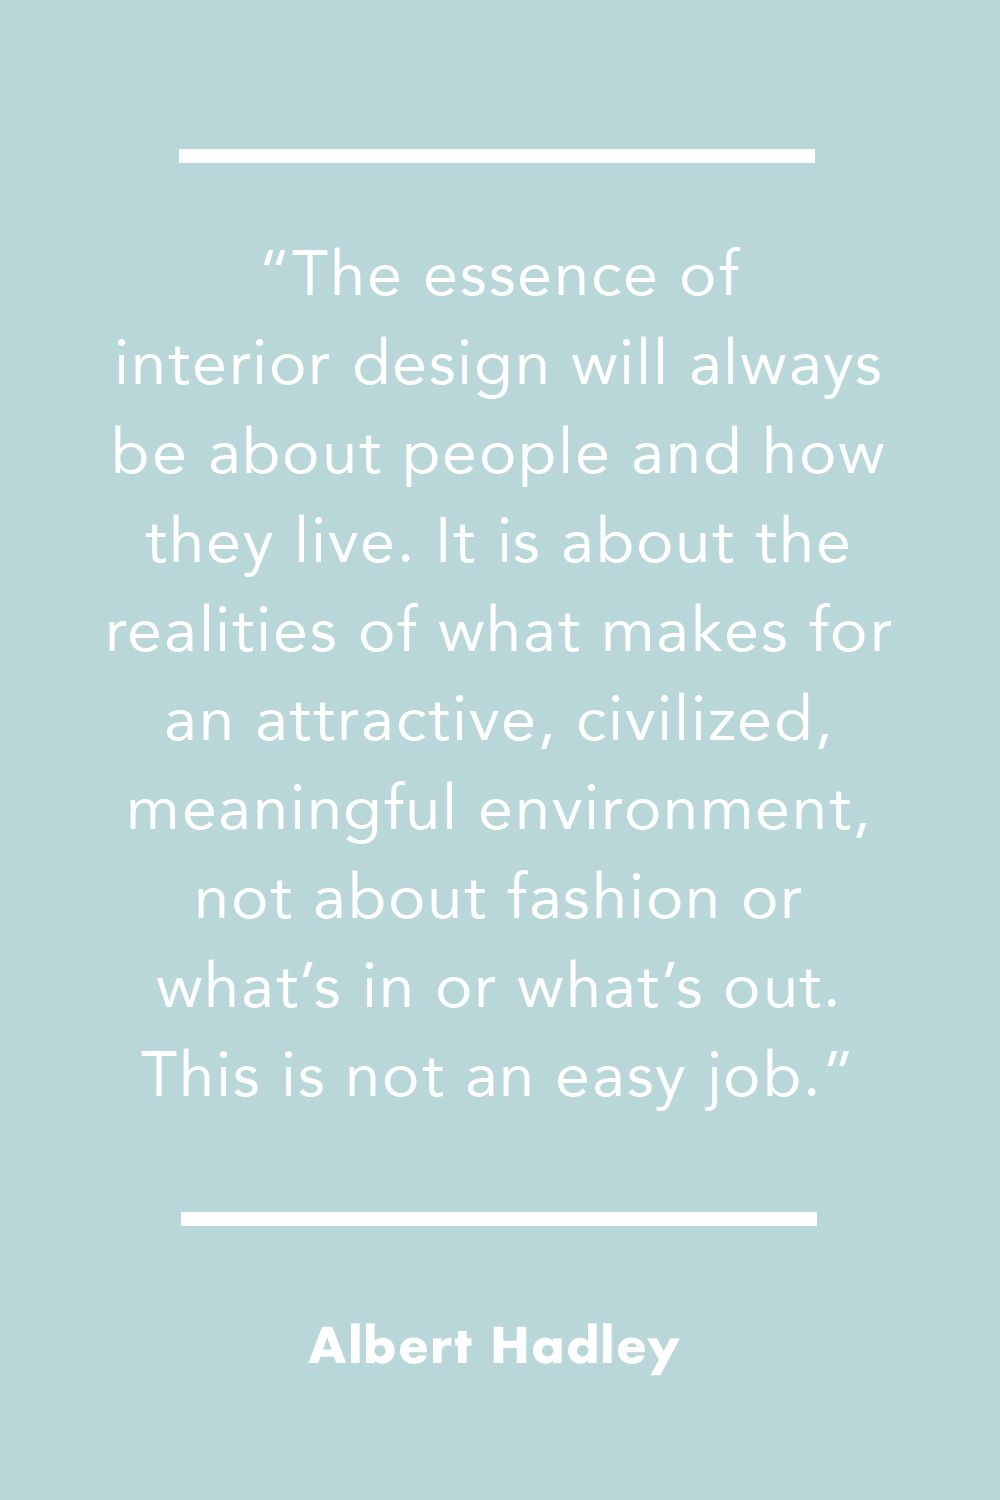 Inspiring Quotes from Top Interior Designers - Best Design